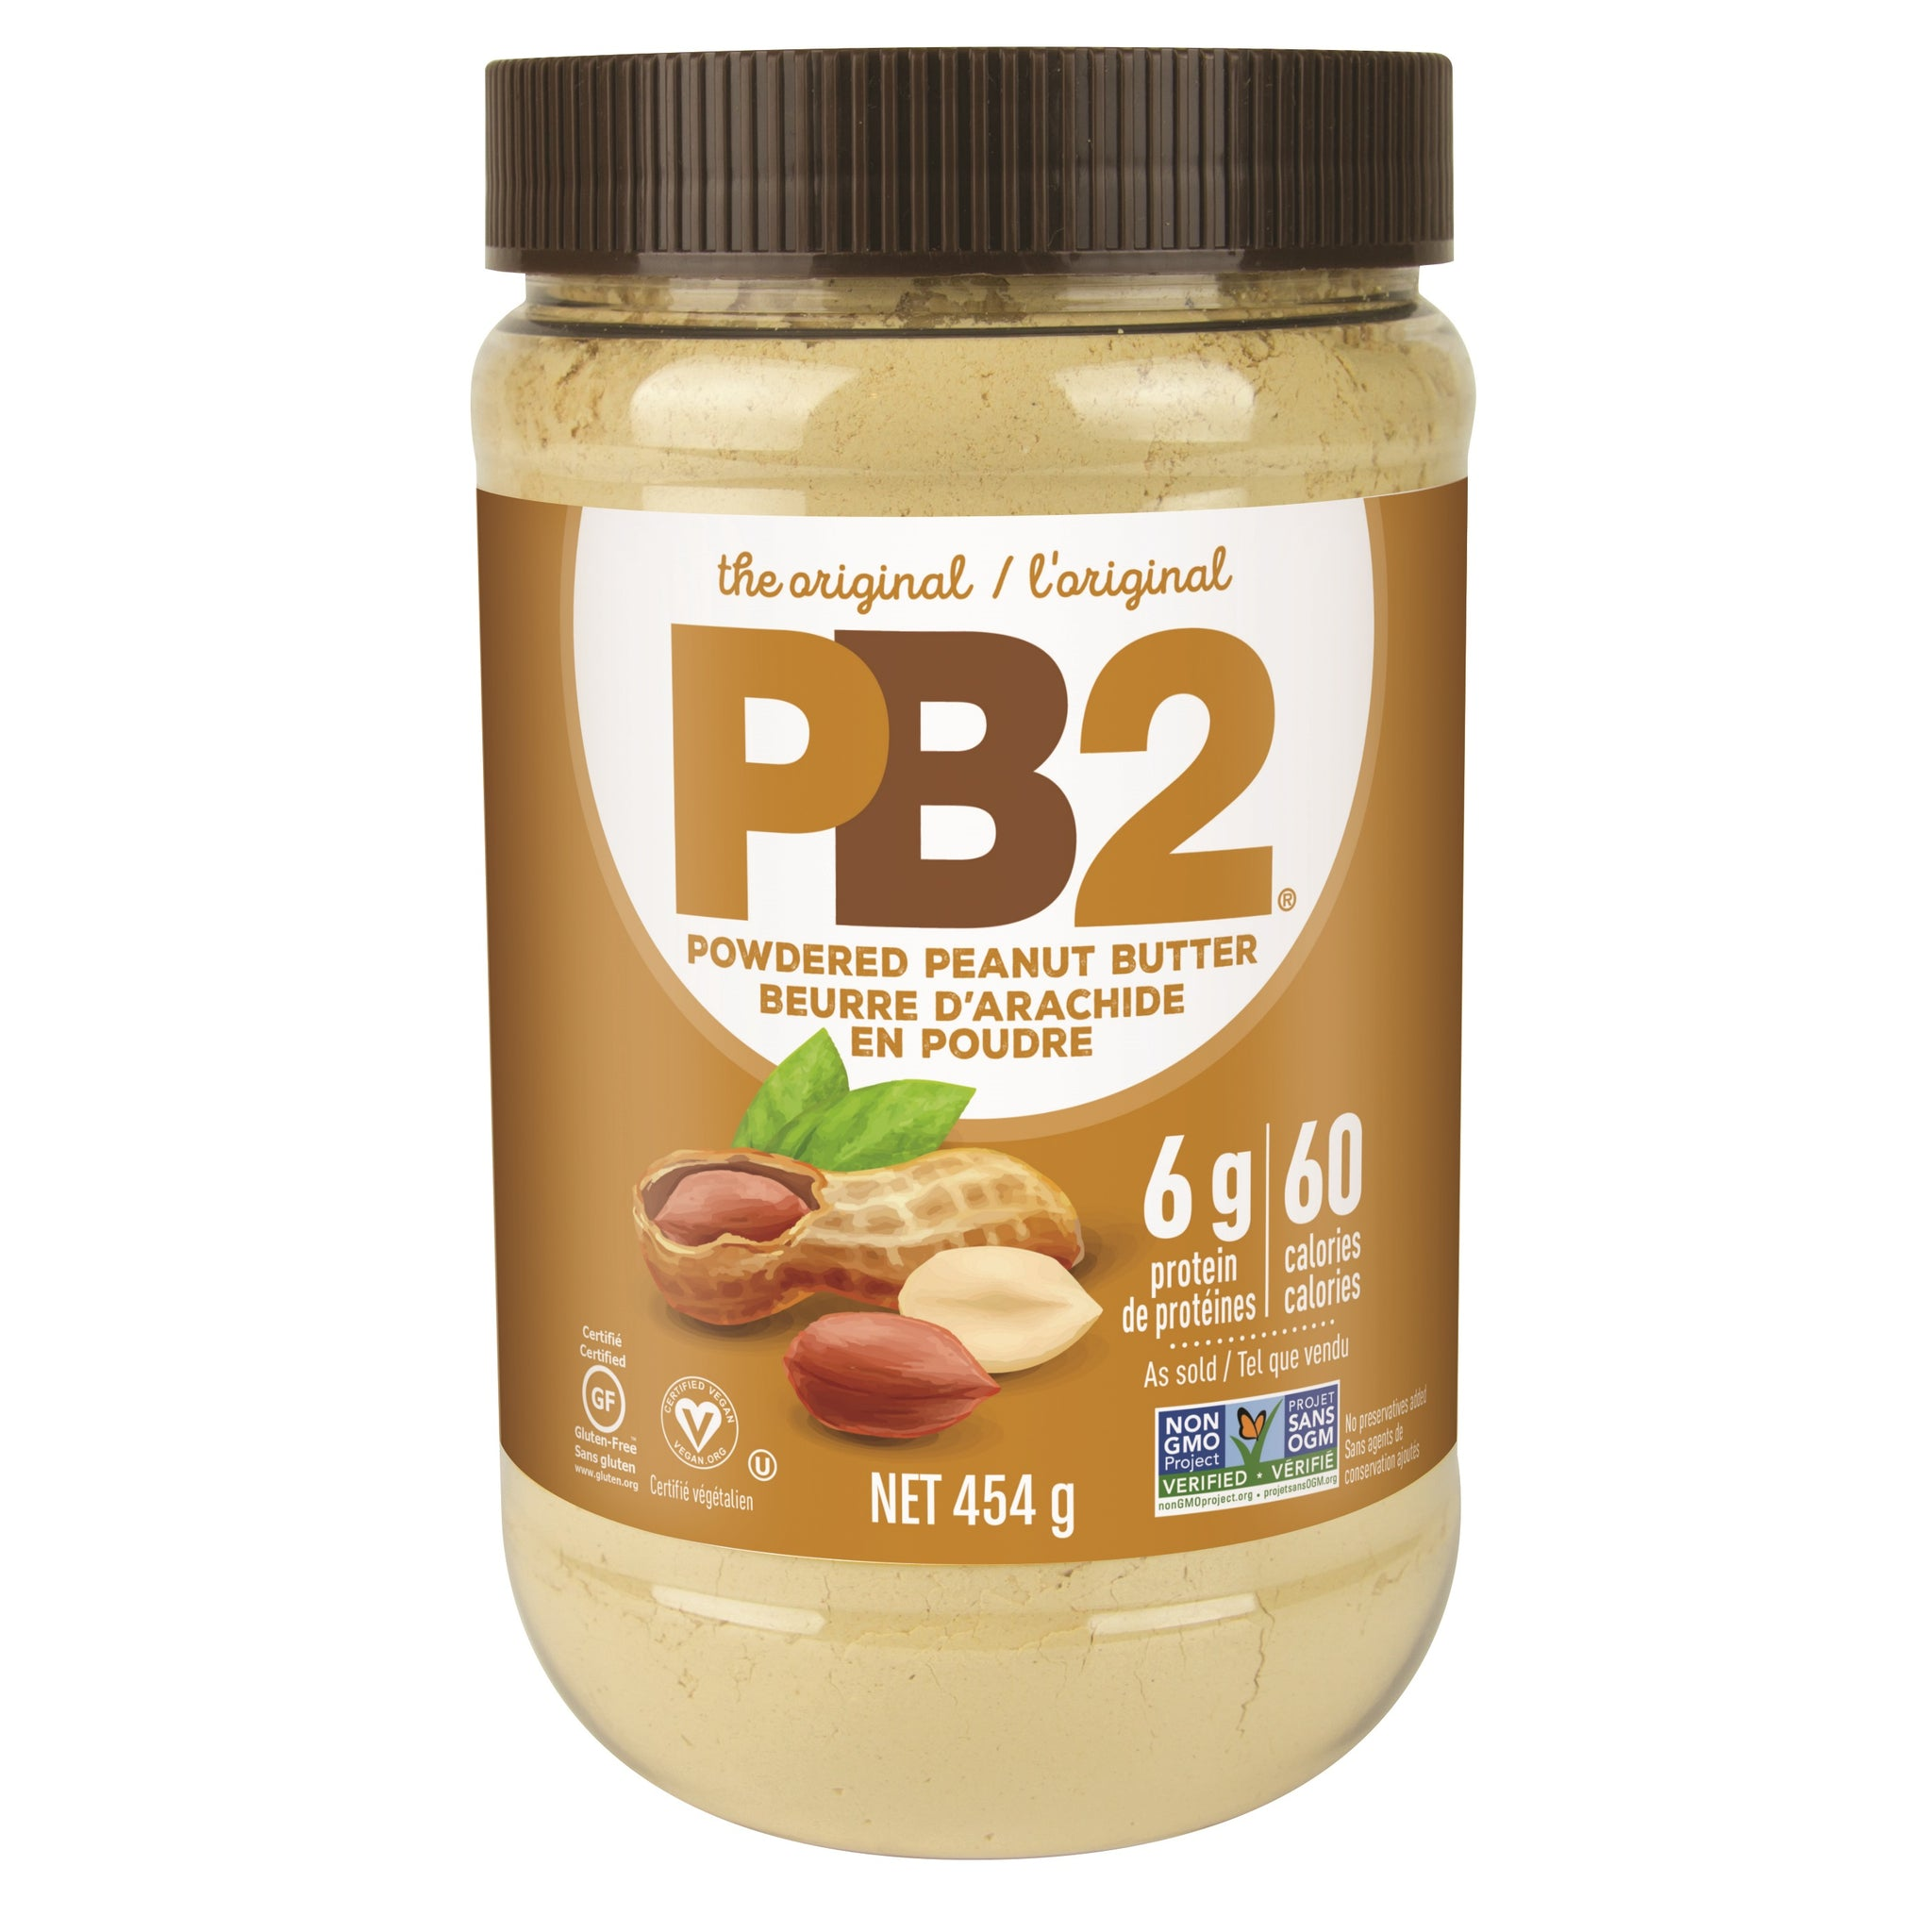 PB2 Powdered Peanut Butter (Large Jars), Oct Promo - 25% Off